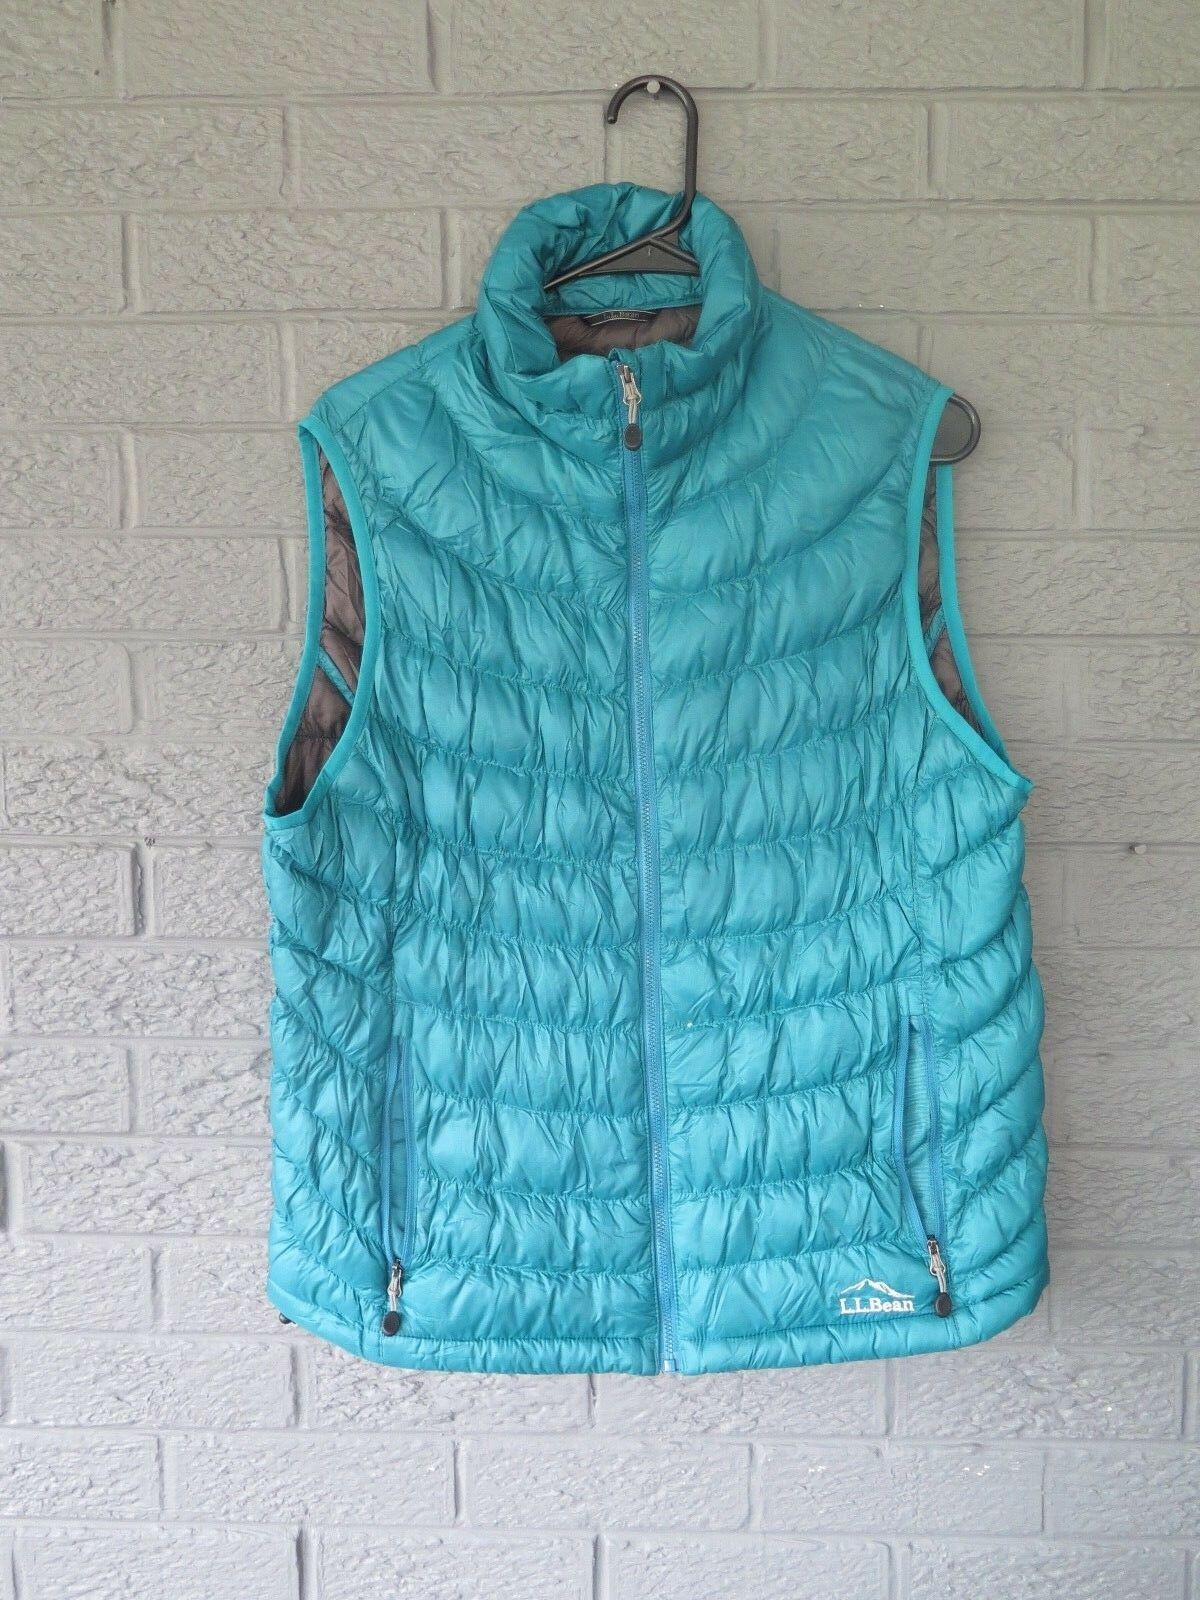 WOMENS LL BEAN DOWN SWEATER VEST IN TEAL GREEN SIZE MEDIUM BARELY WORN DOWNTEK